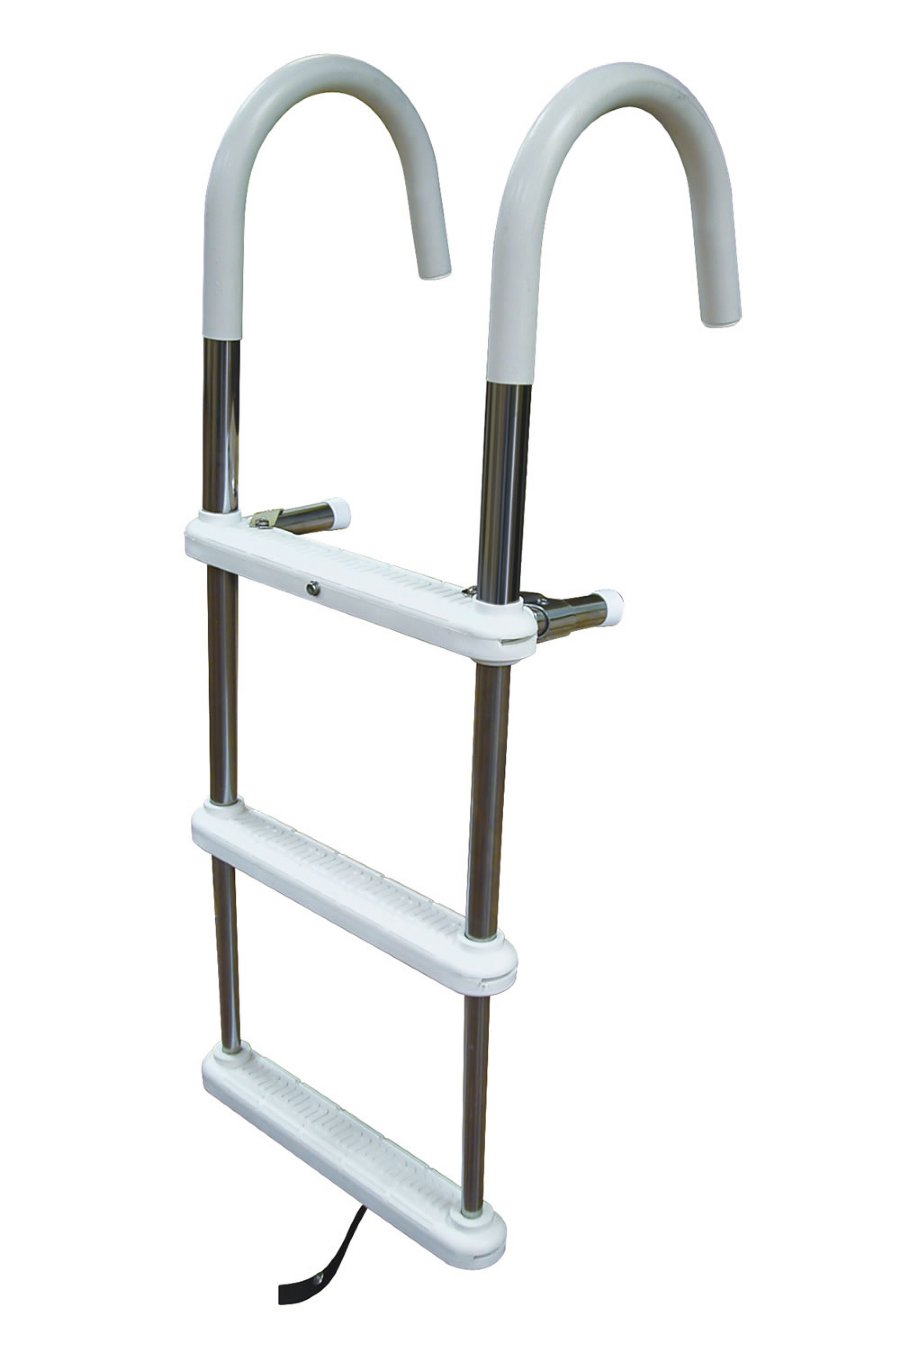 4 Step Stainless Steel Telescoping Gunwale Hook Ladders